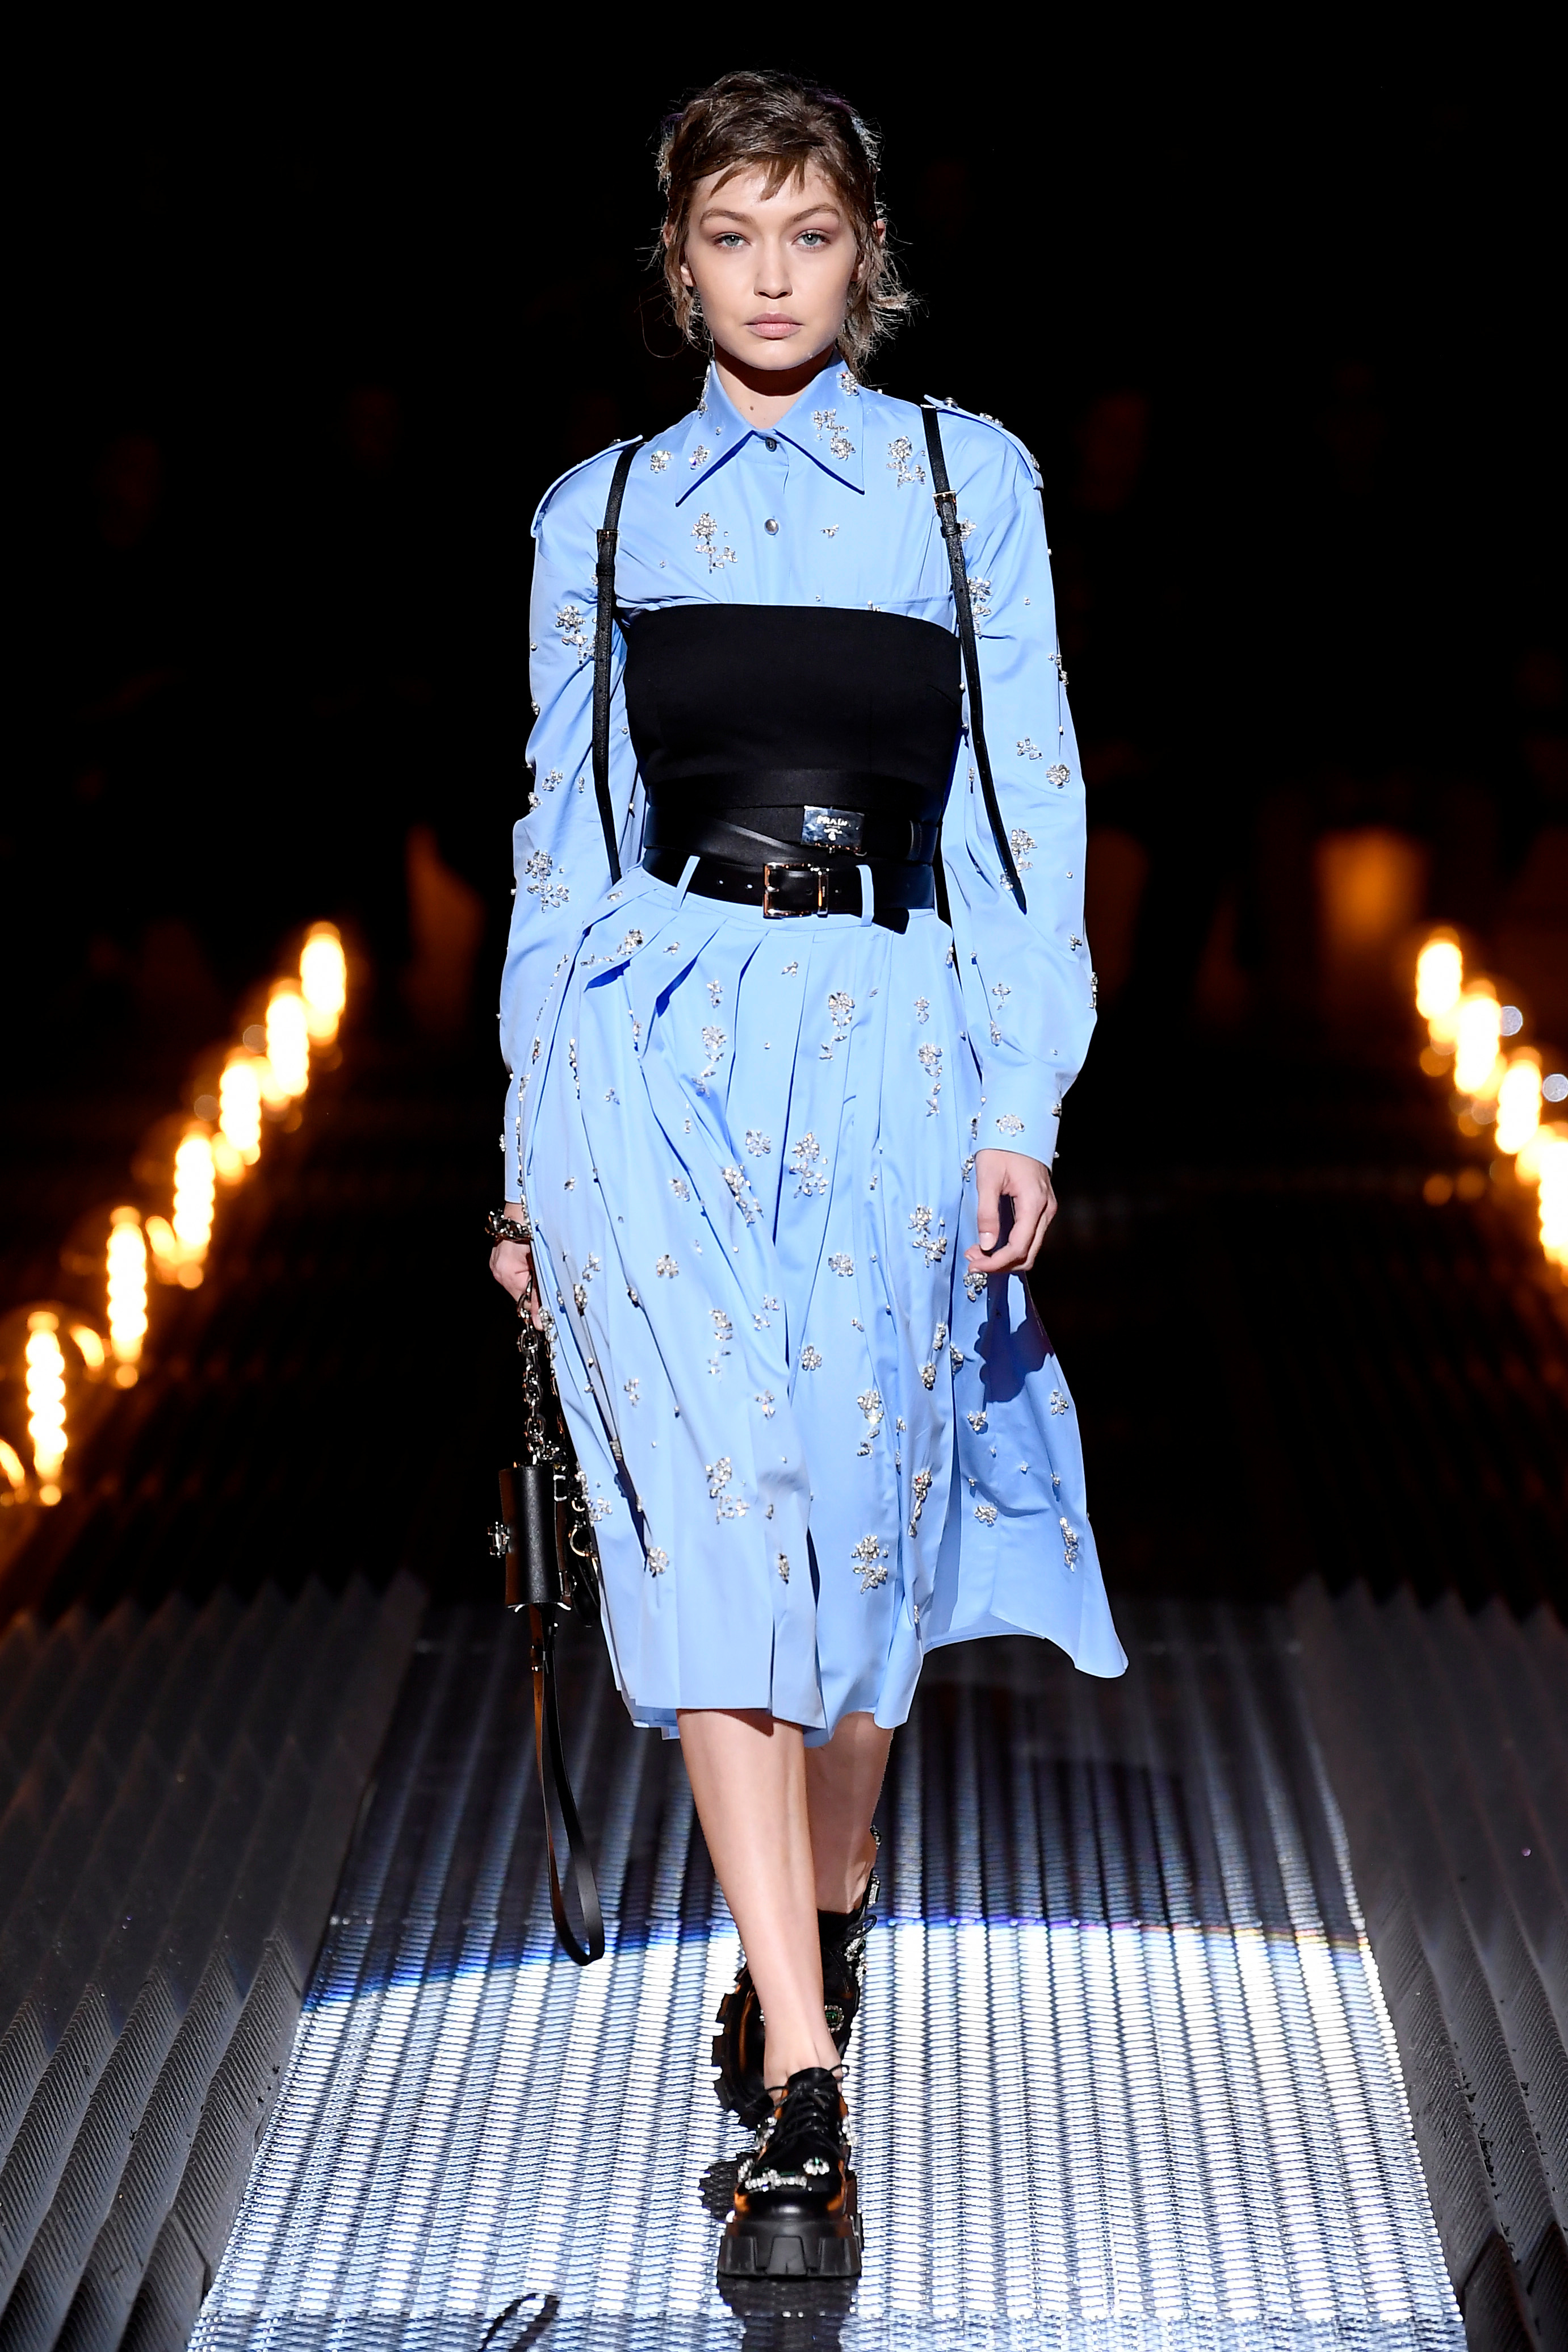 Gigi Hadid appears on the catwalk of the Prada show, for Fall/Winter 2019 at Milan Fashion Week Men's on Jan. 13, 2019.